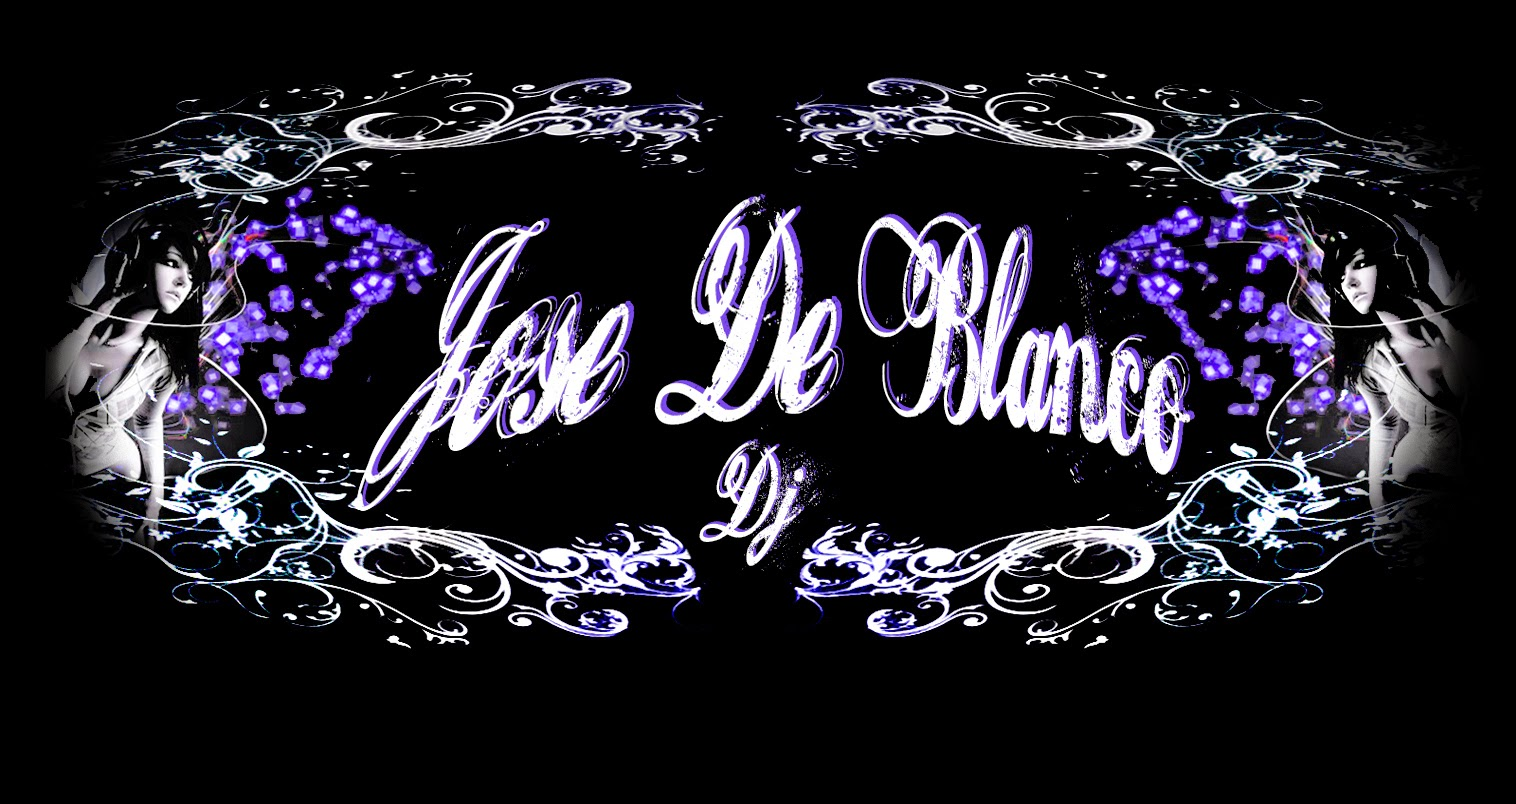 Jose De Blanco dj Web